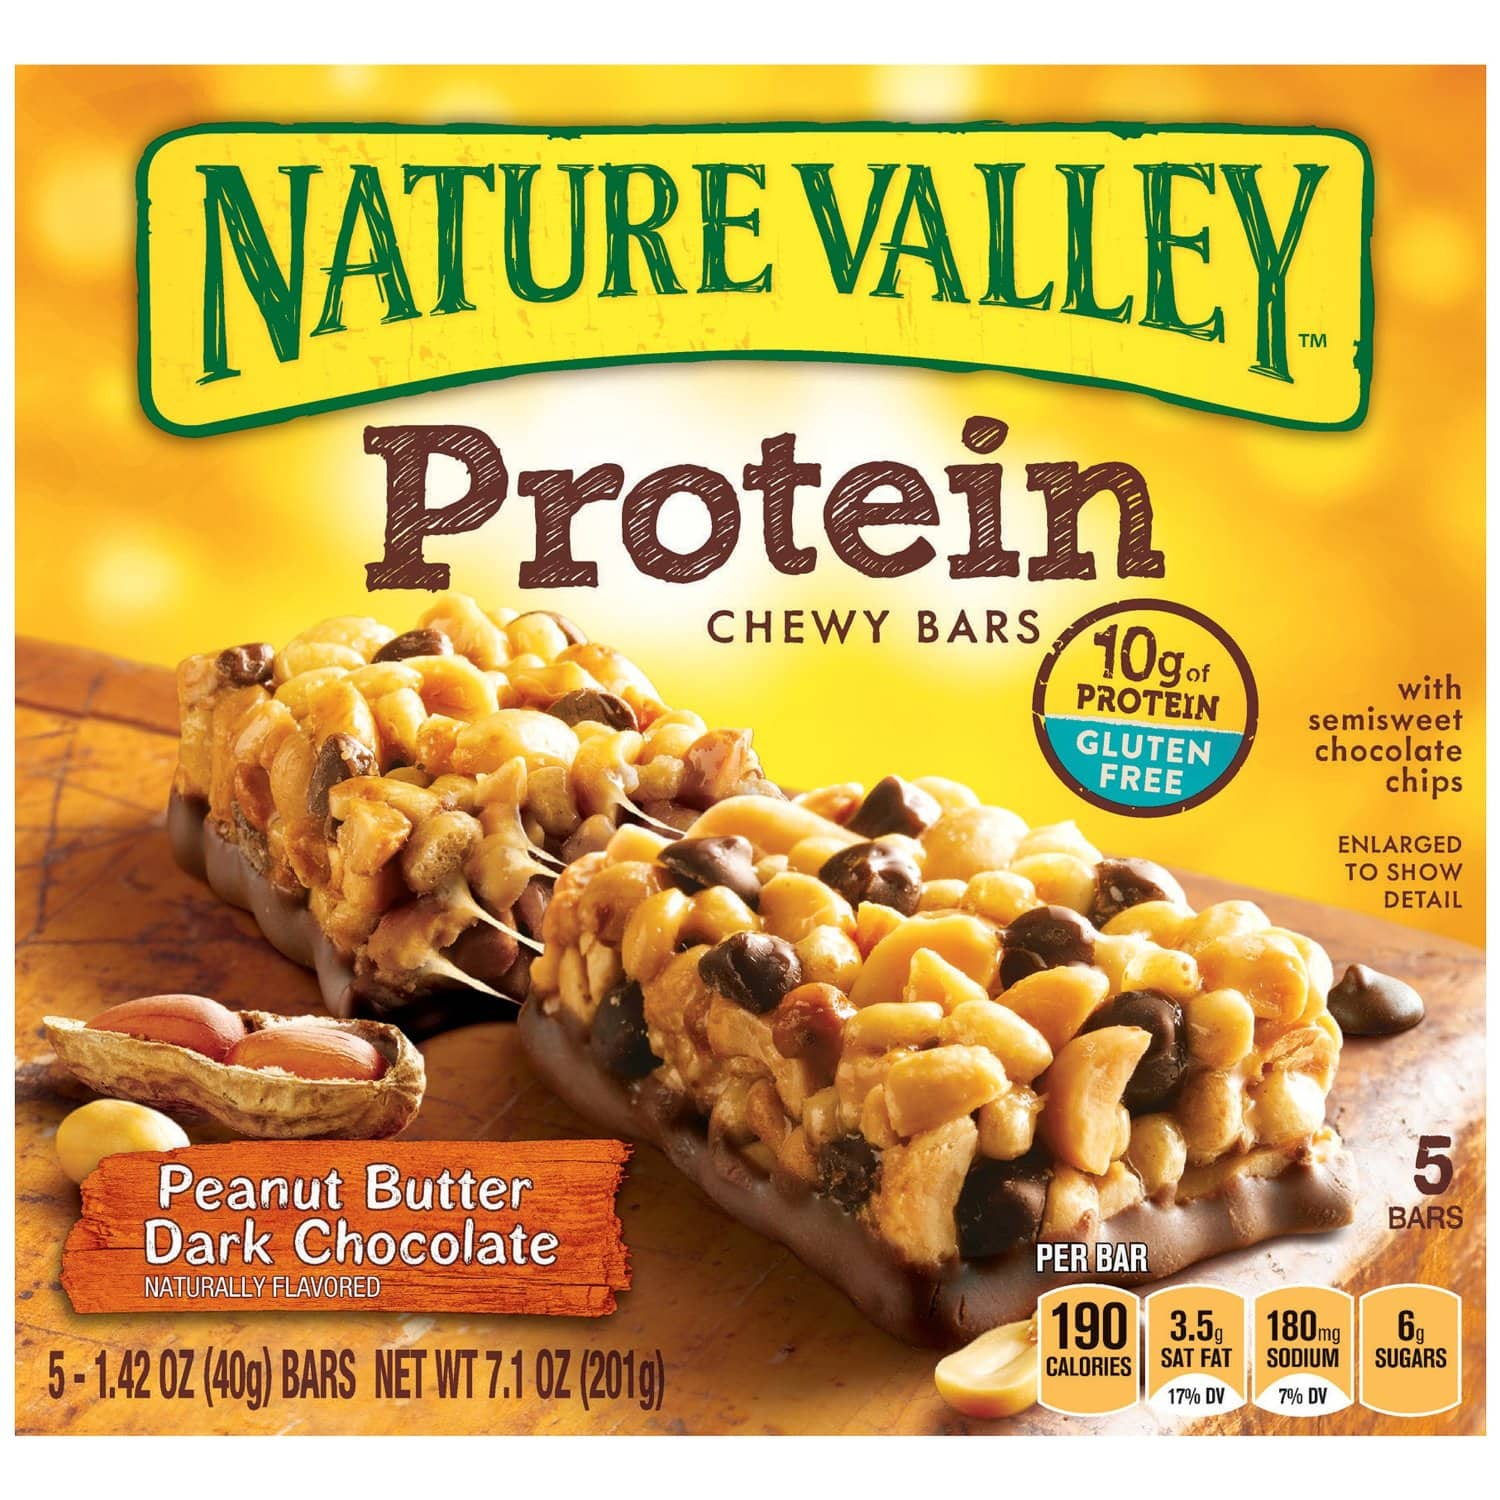 6-Pack 5-Ct Nature Valley PB Dark Chocolate Protein Bars $11.19 - Amazon S&S w/ Coupon